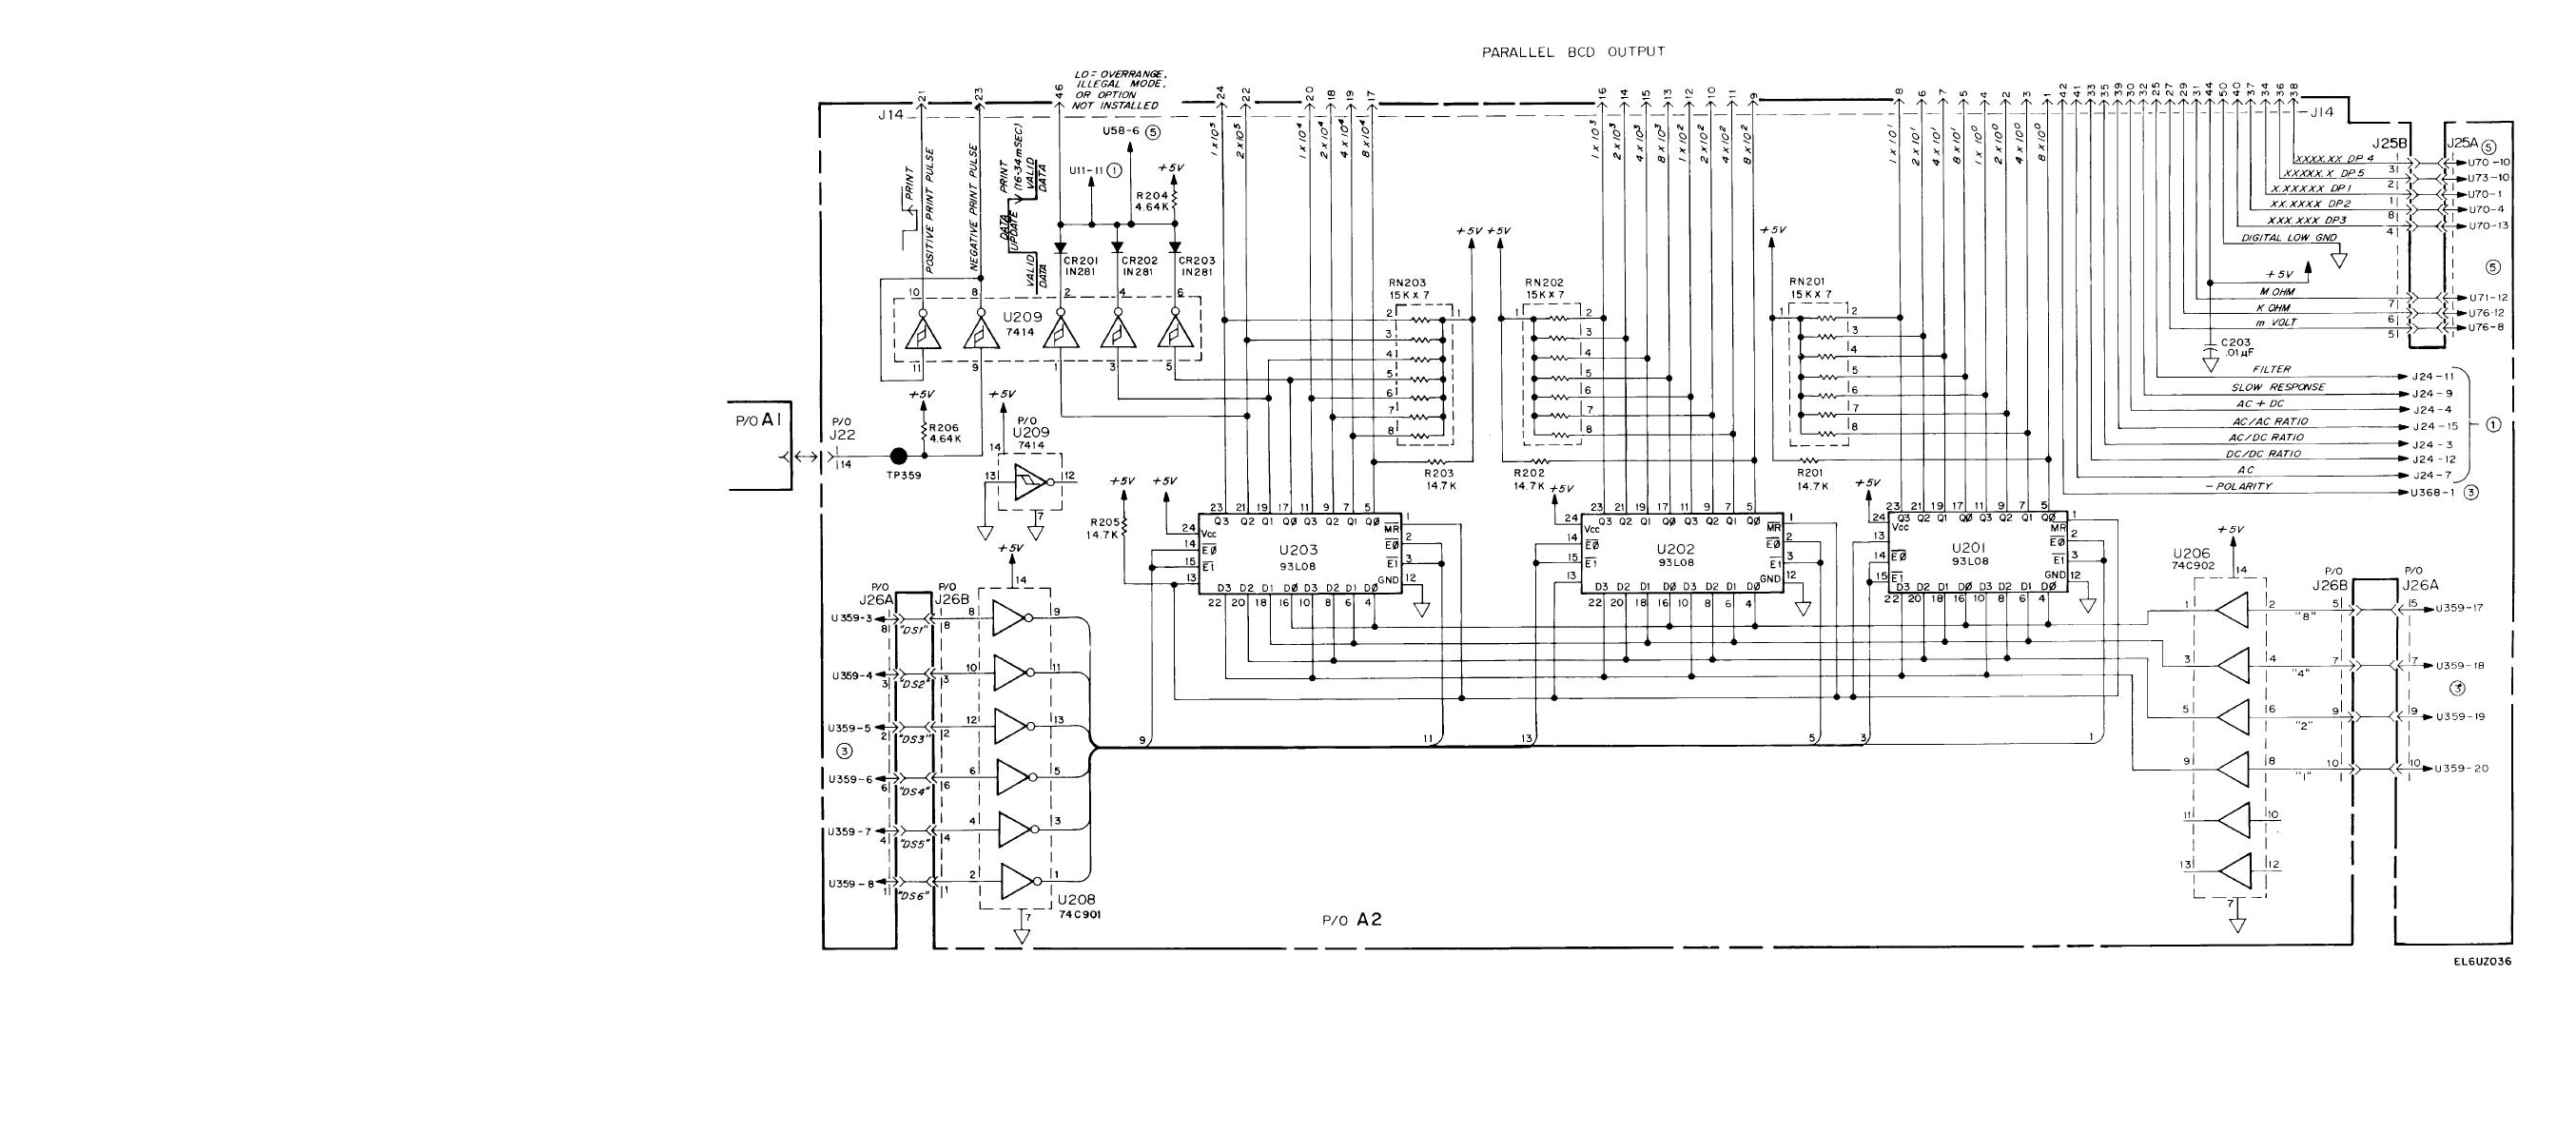 Figure FO-10. Parallel BCD Output (A2) Schematic Diagram